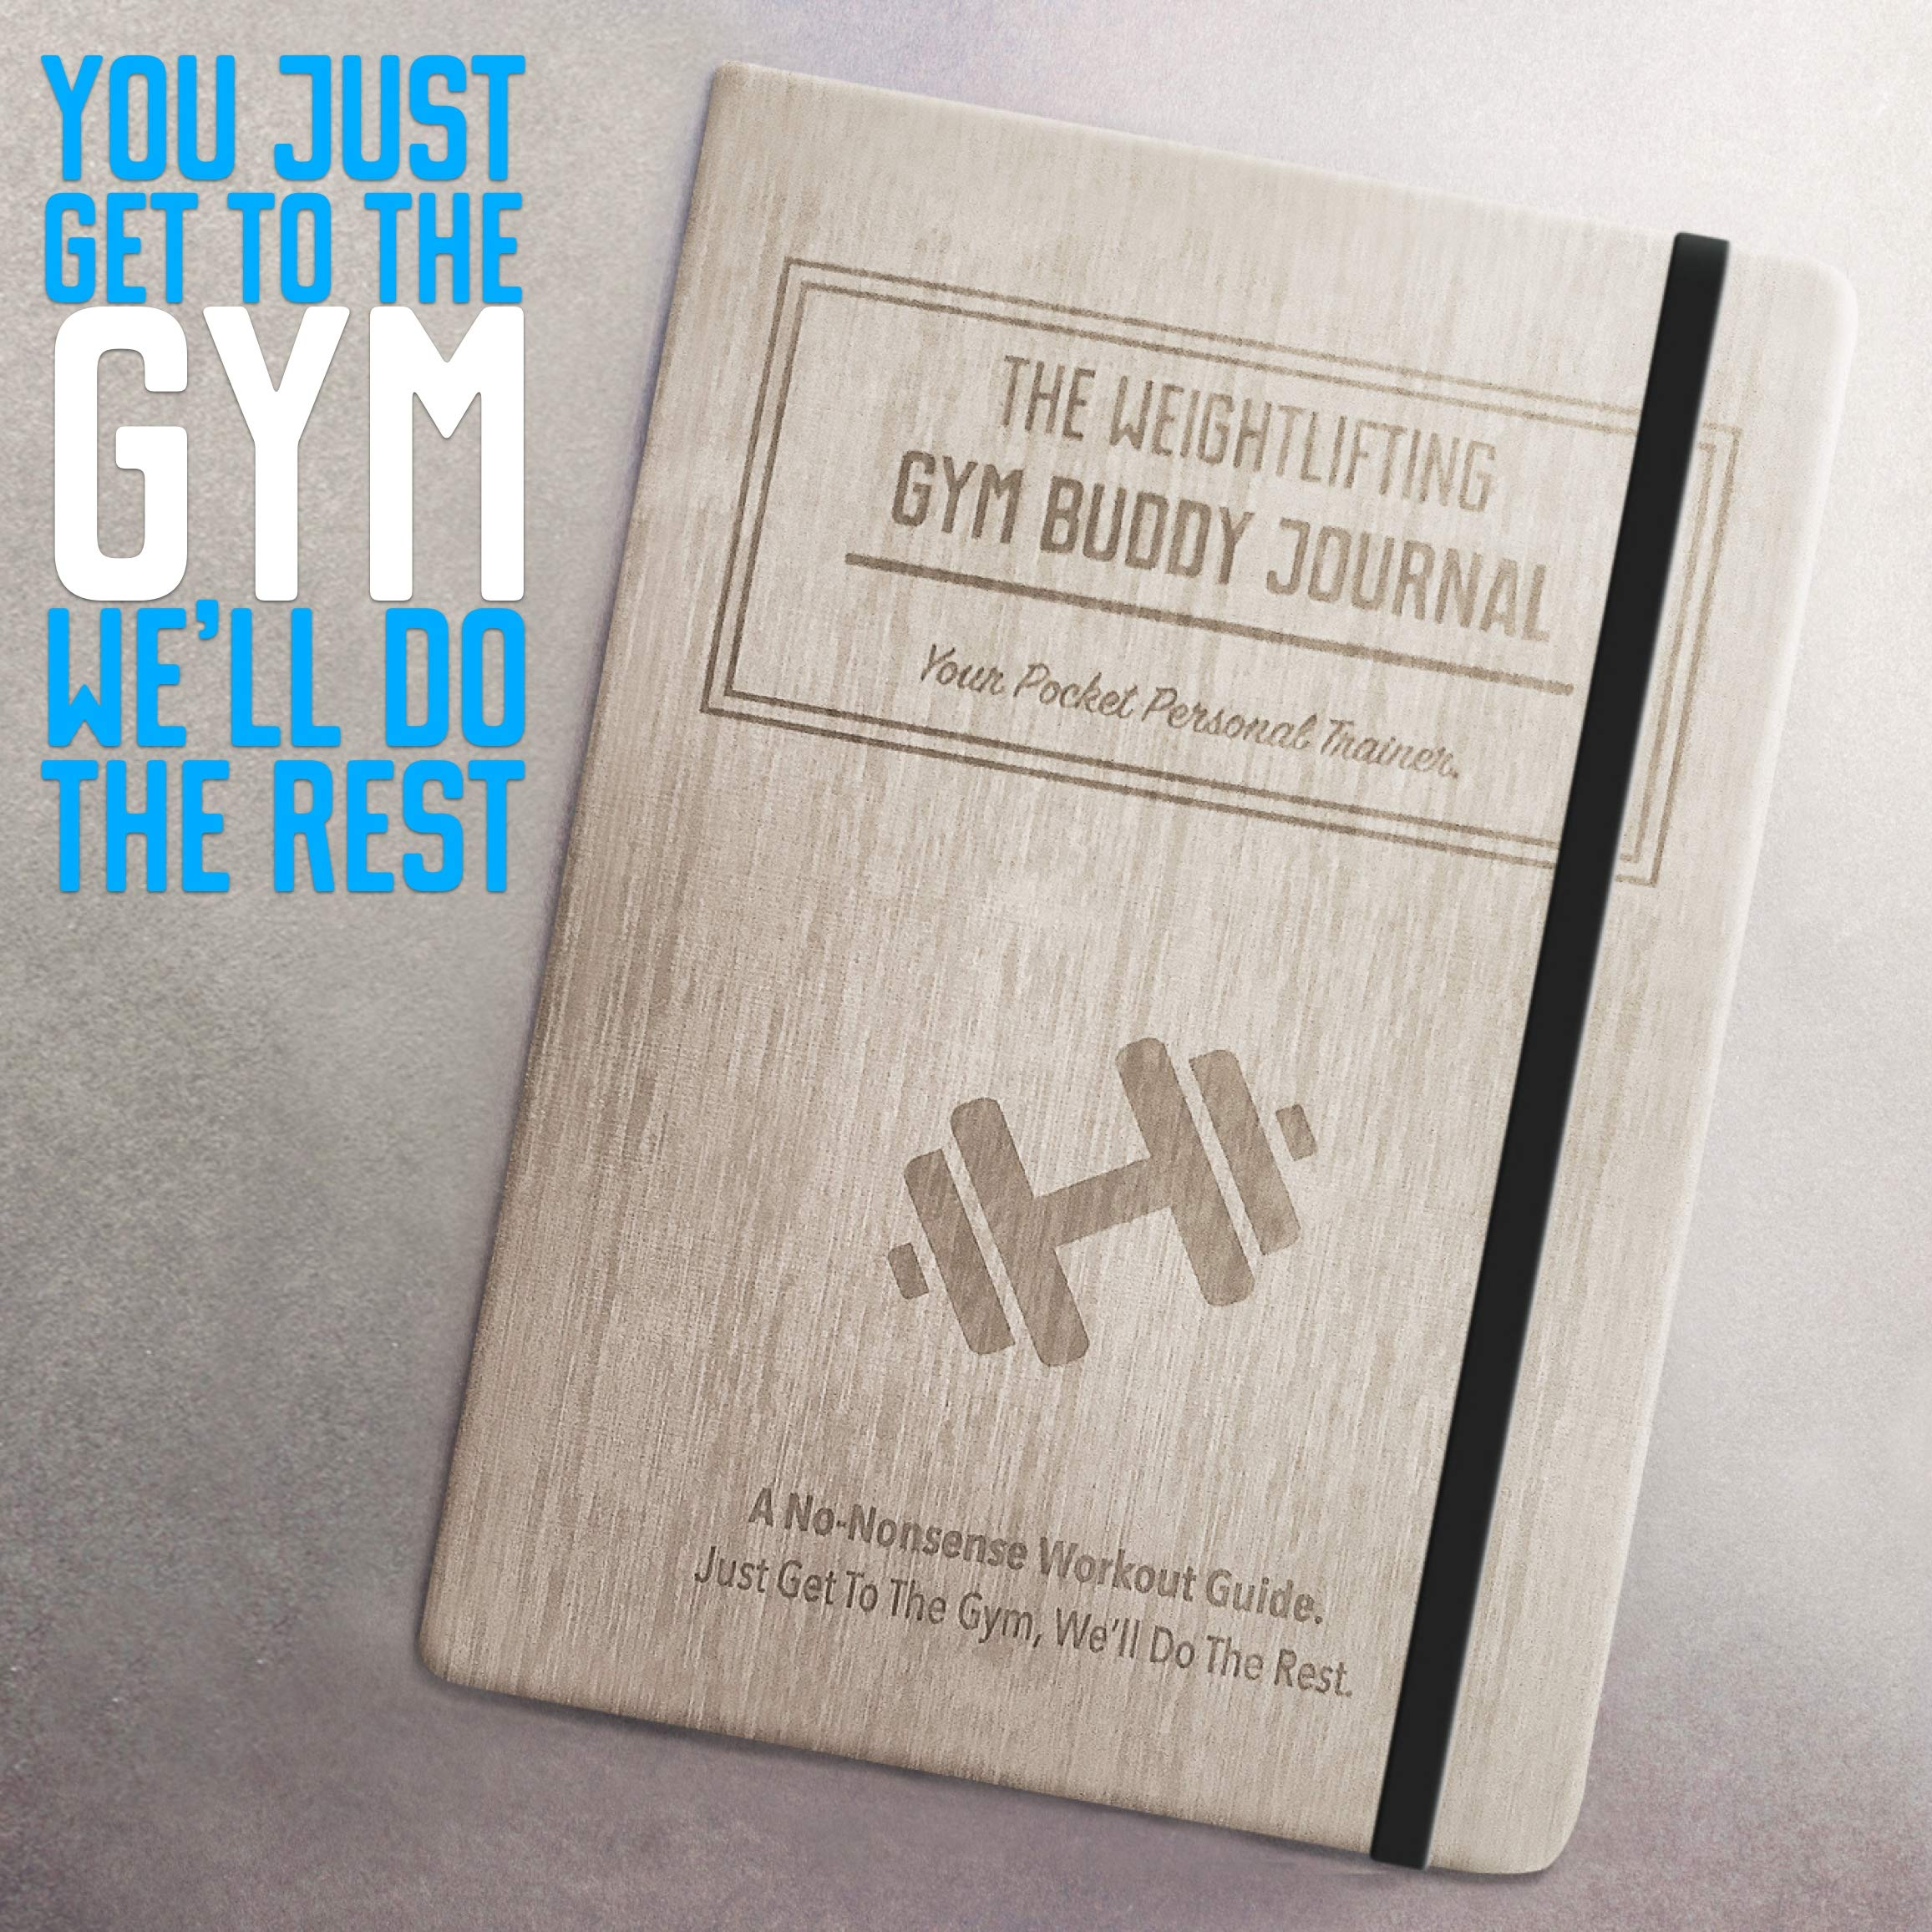 Habit Nest The Weightlifting Gym Buddy Journal. A 12-Week Personal Training Program in A Journal, with Workout and Exercise Journal/Log. Your Ultimate Fitness Planner. by Habit Nest (Image #7)